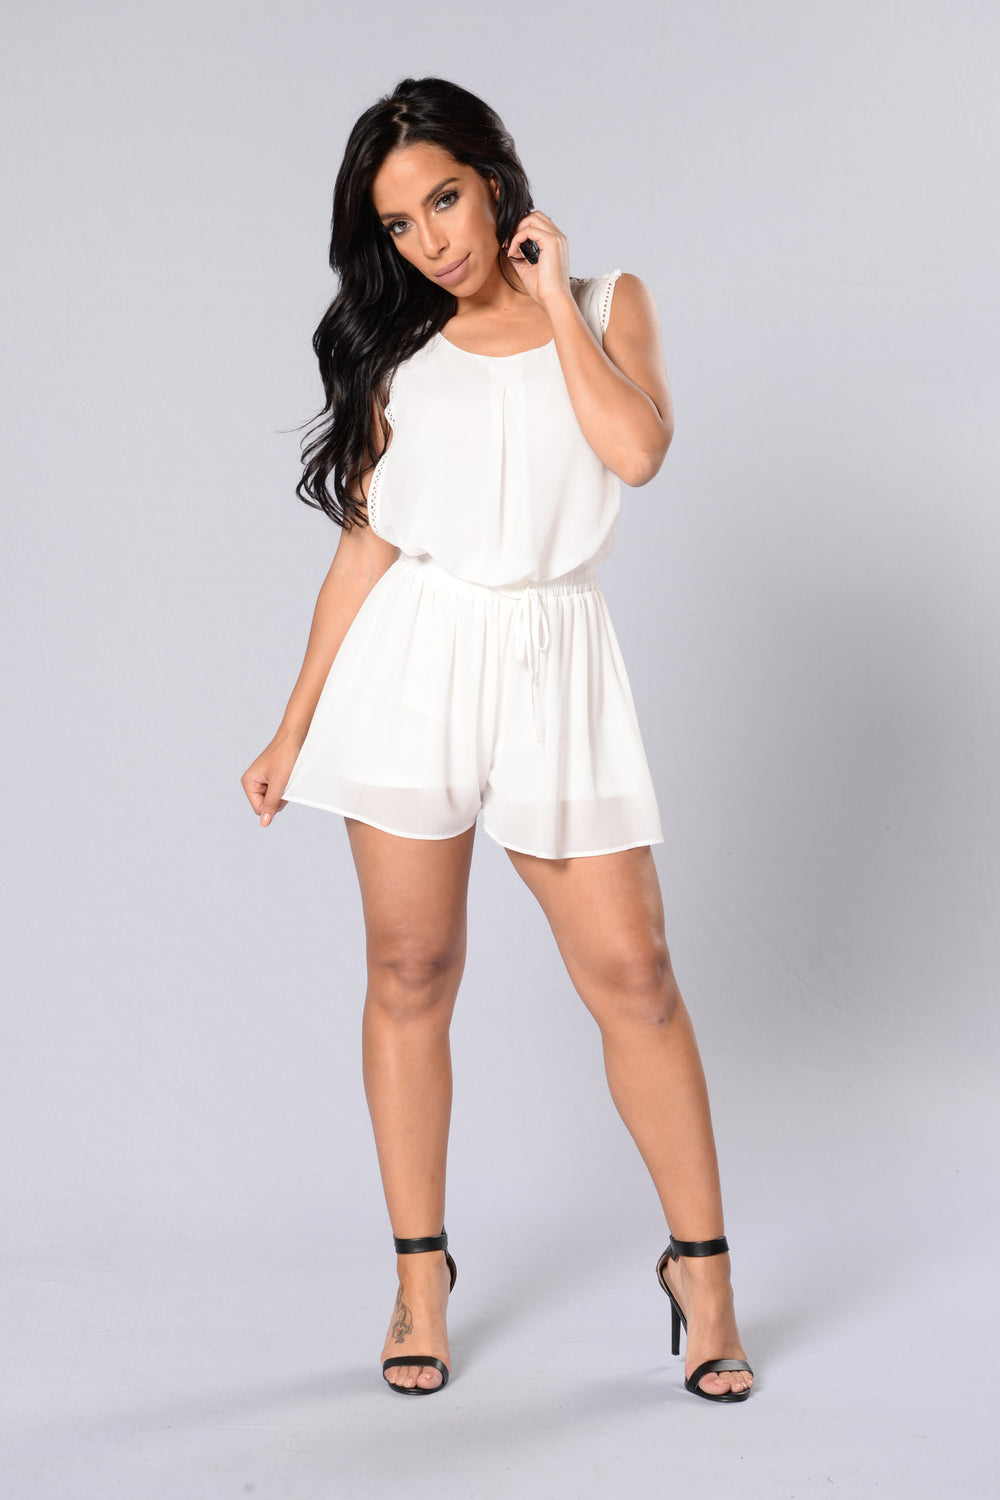 Behind Bars Romper - White